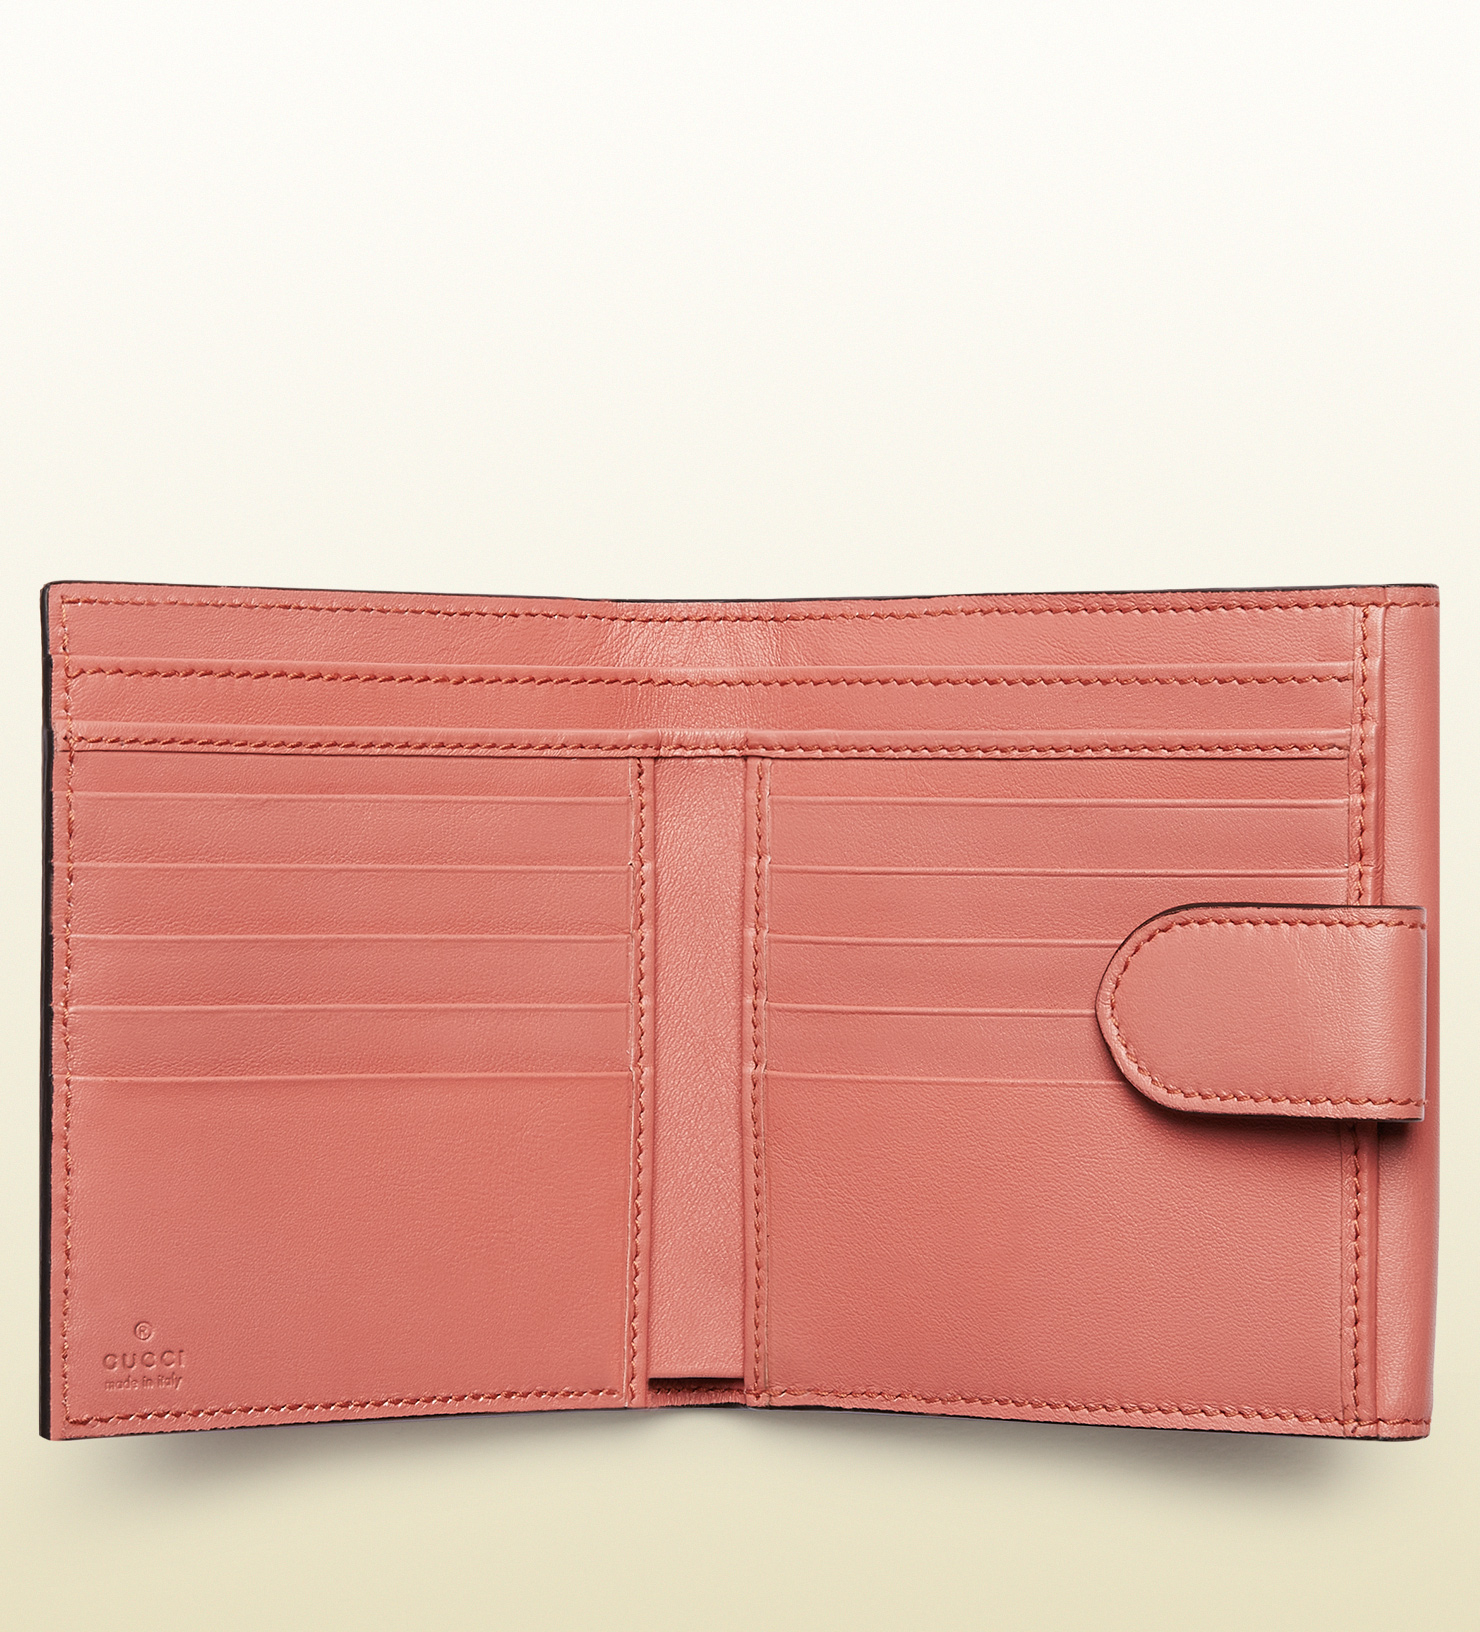 dd434ab3fb9 Lyst - Gucci Icon Leather French Flap Wallet in Pink